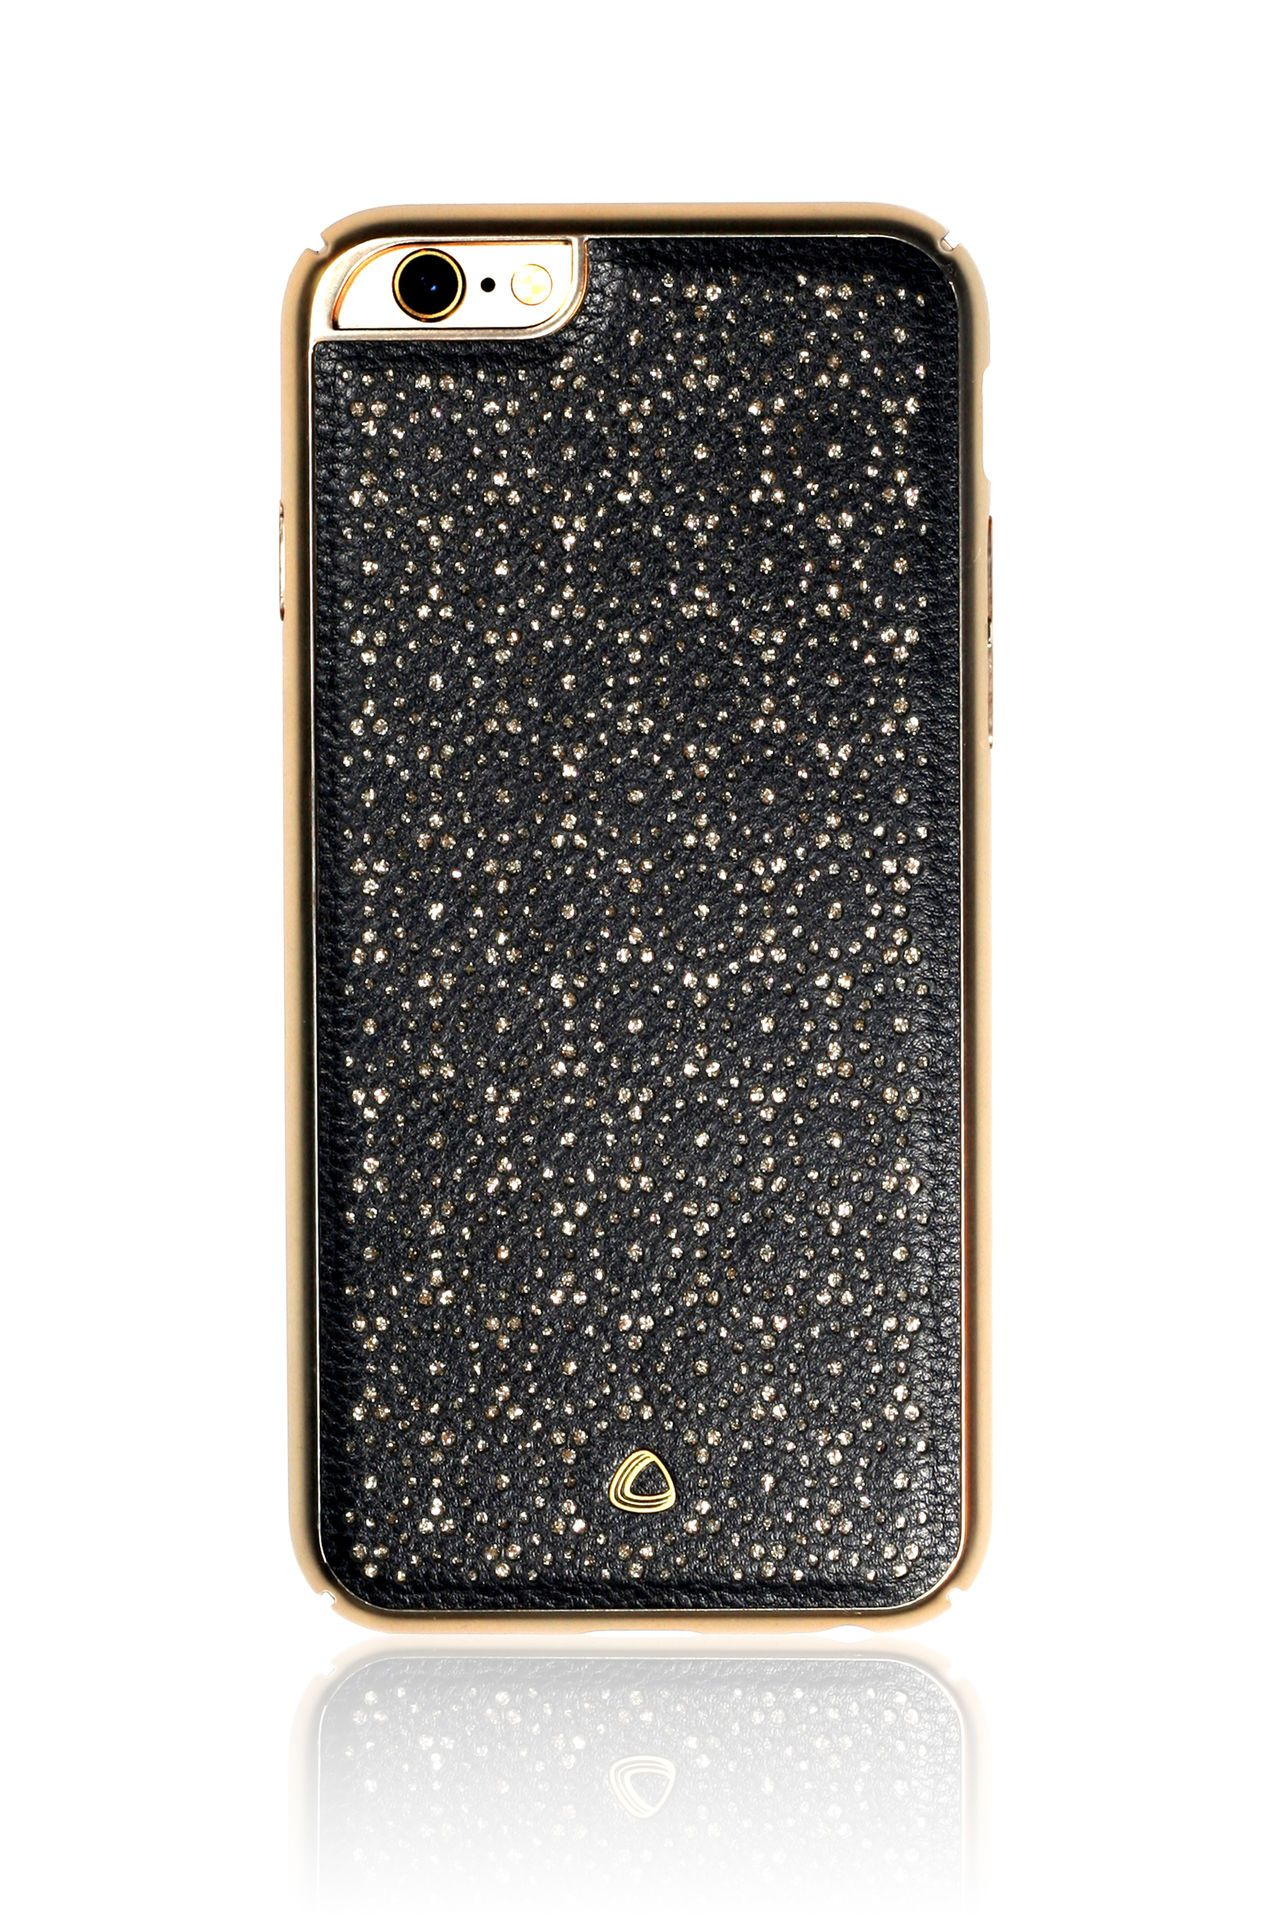 OCCA Ferragamo Series Designer Back Cover Mobile Phone Case for iPhone 6 6s Black